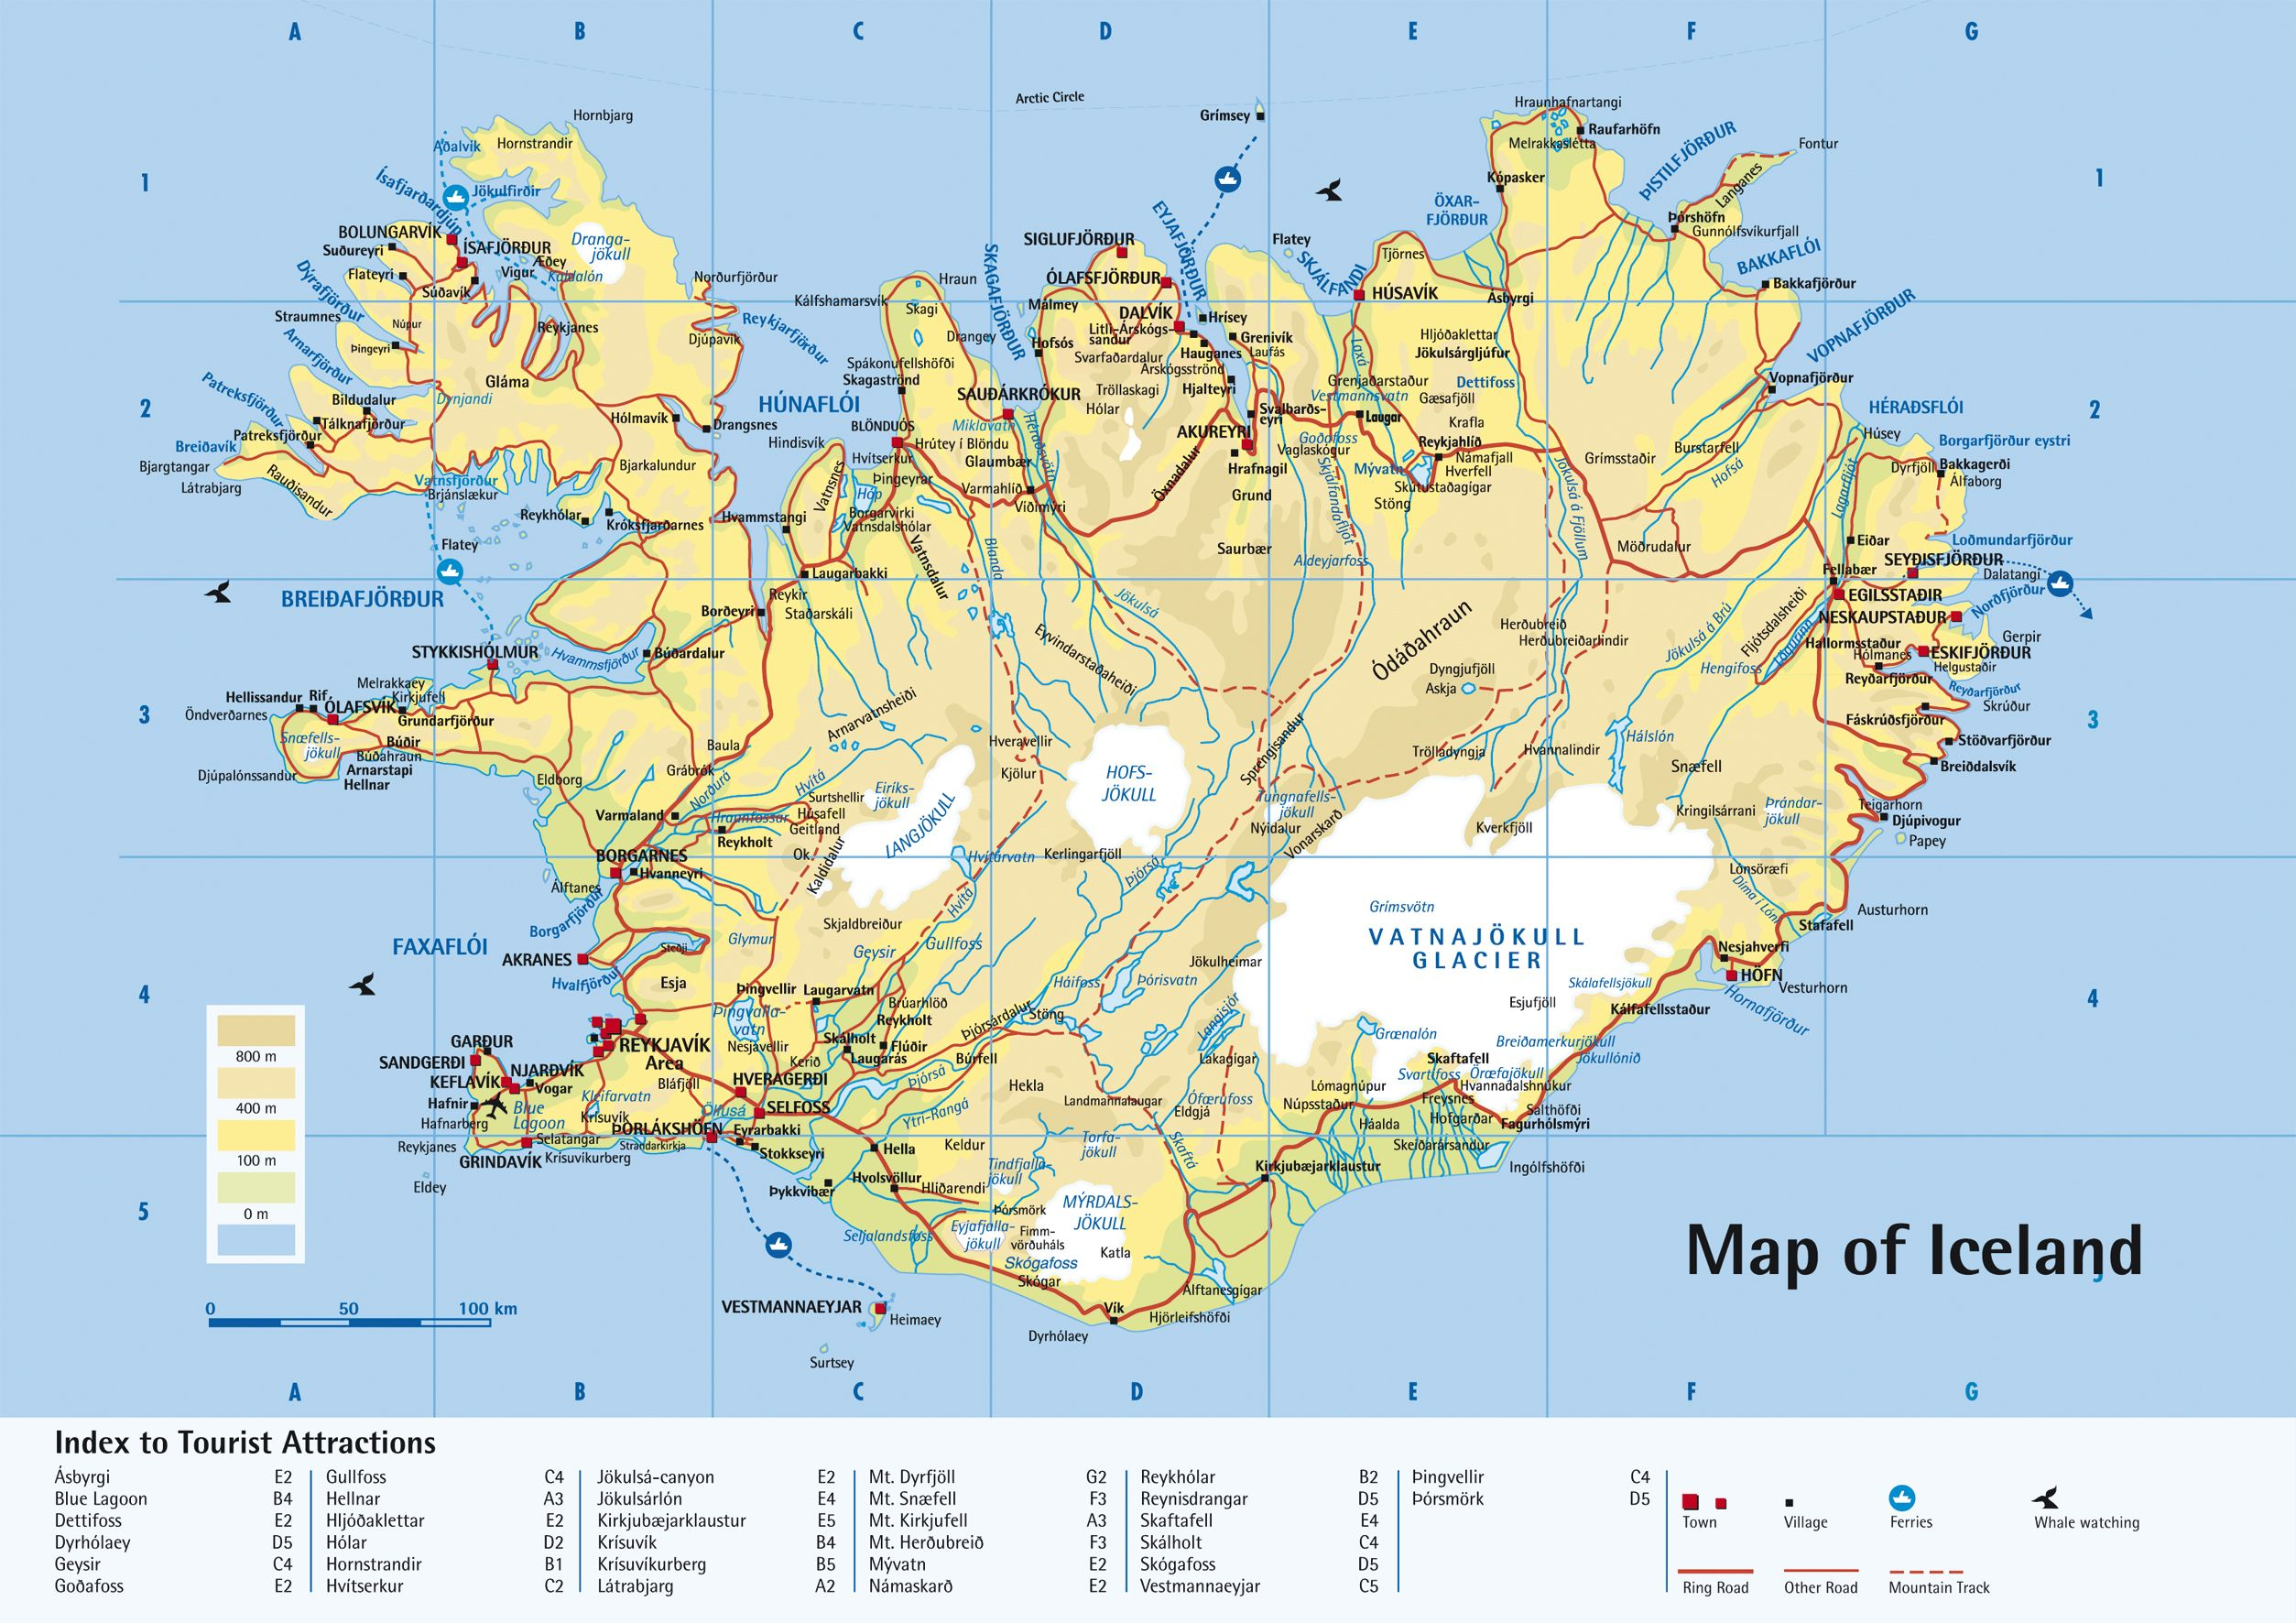 iceland my favorite place ever maps of iceland pinterest